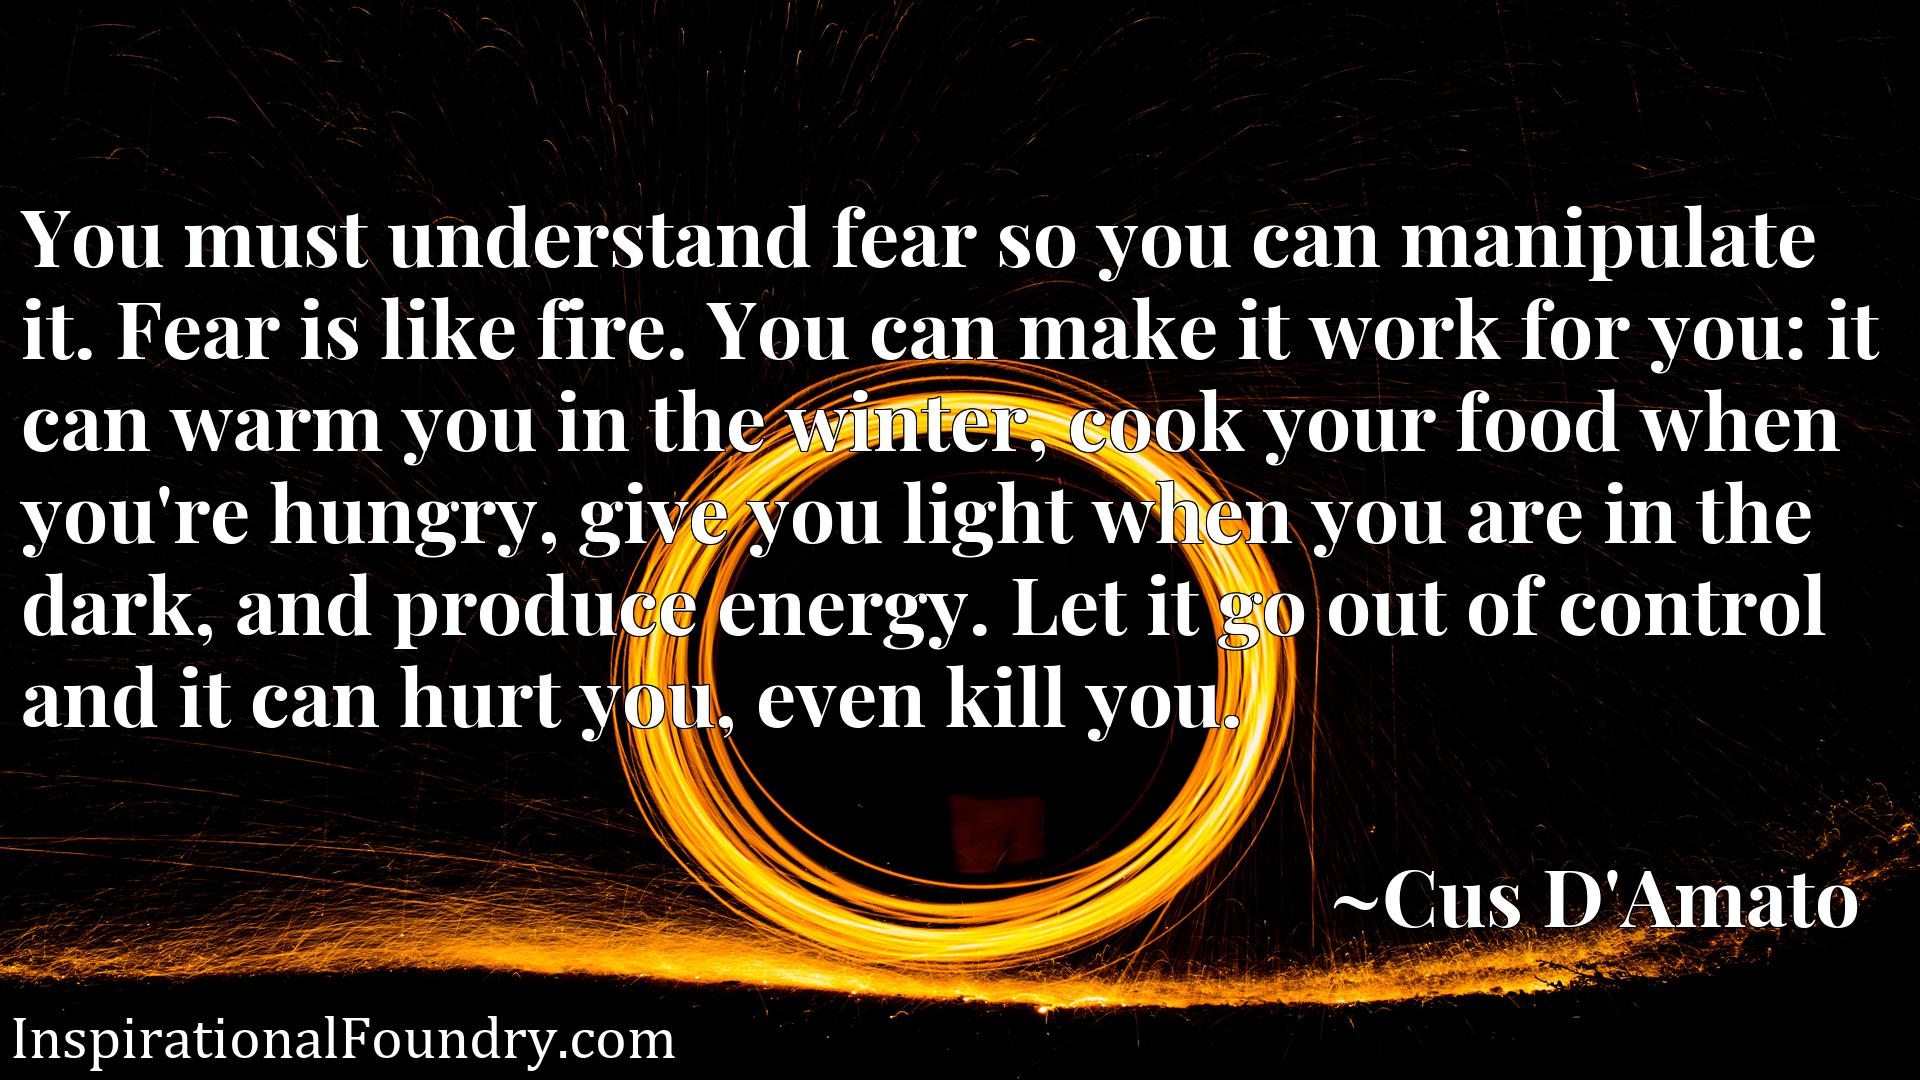 You must understand fear so you can manipulate it. Fear is like fire. You can make it work for you: it can warm you in the winter, cook your food when you're hungry, give you light when you are in the dark, and produce energy. Let it go out of control and it can hurt you, even kill you.